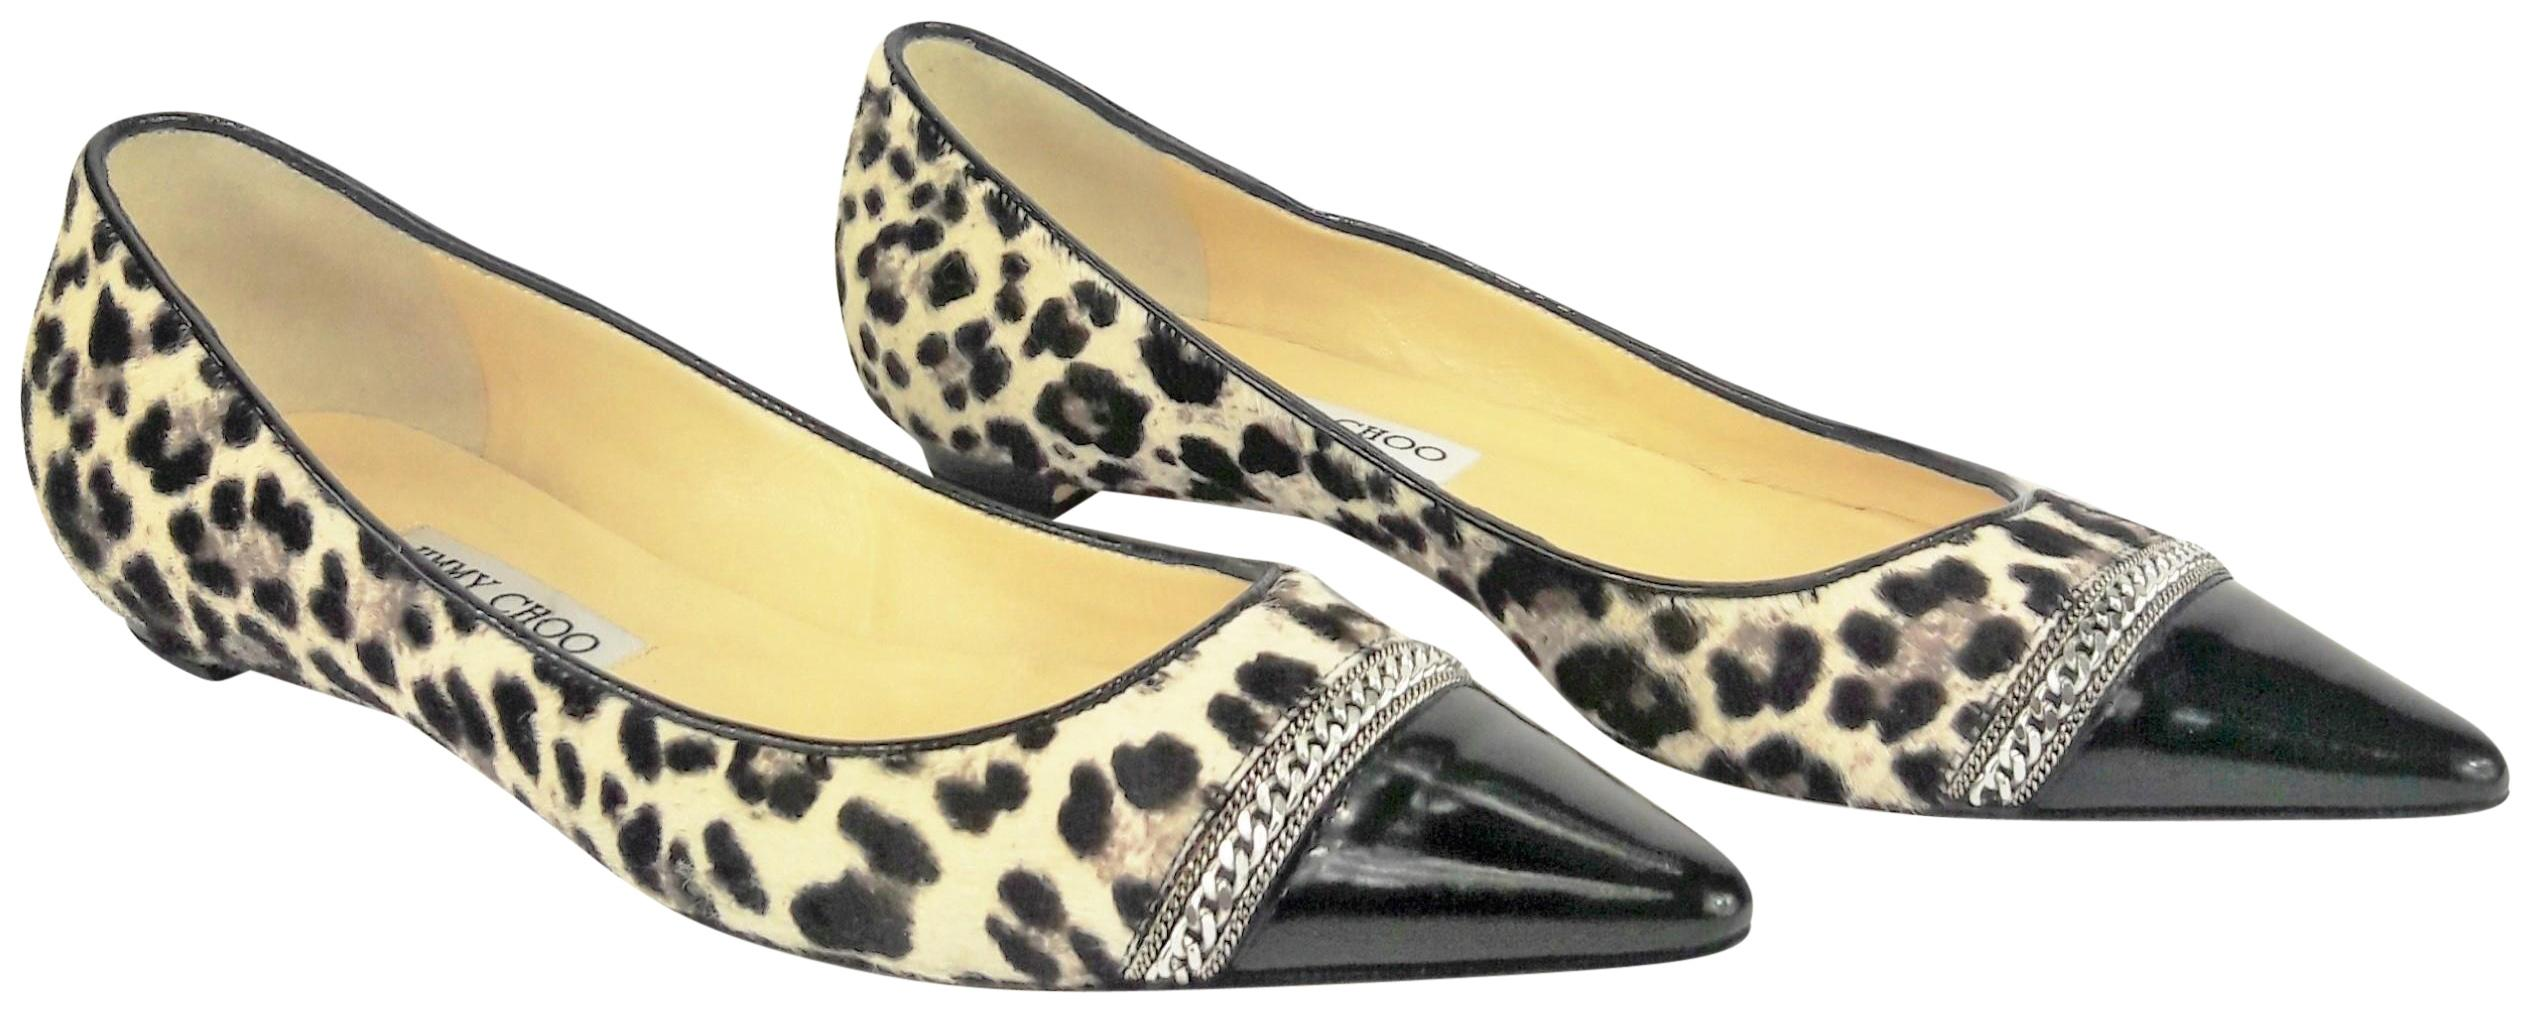 free shipping pre order Jimmy Choo Ponyhair Cap-Toe Flats cheap many kinds of cheap best sale largest supplier dIJTi389jQ